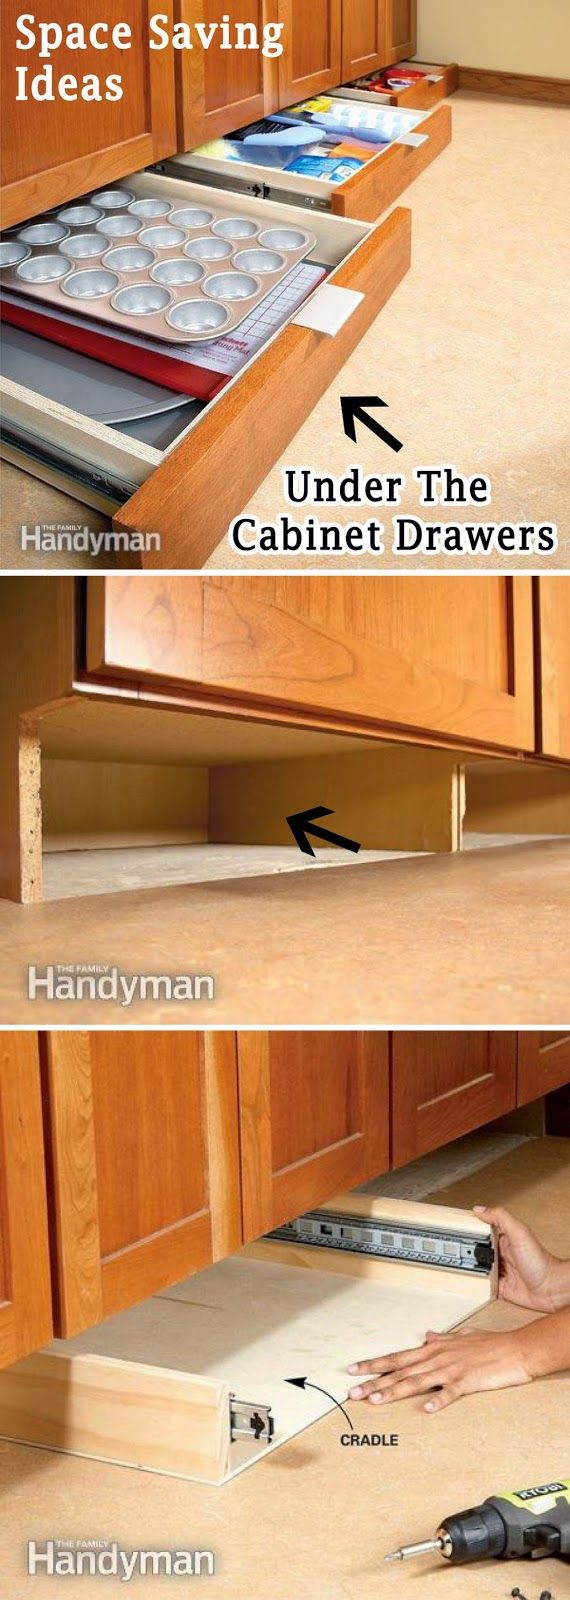 charming Kitchen Cabinet Space Saver Part - 15: 11 Creative and Clever Space Saving Ideas ~~~~~~~~~~~~~~~~~~~~~ Make more  space in the kitchen without remodeling or adding more cabinets.